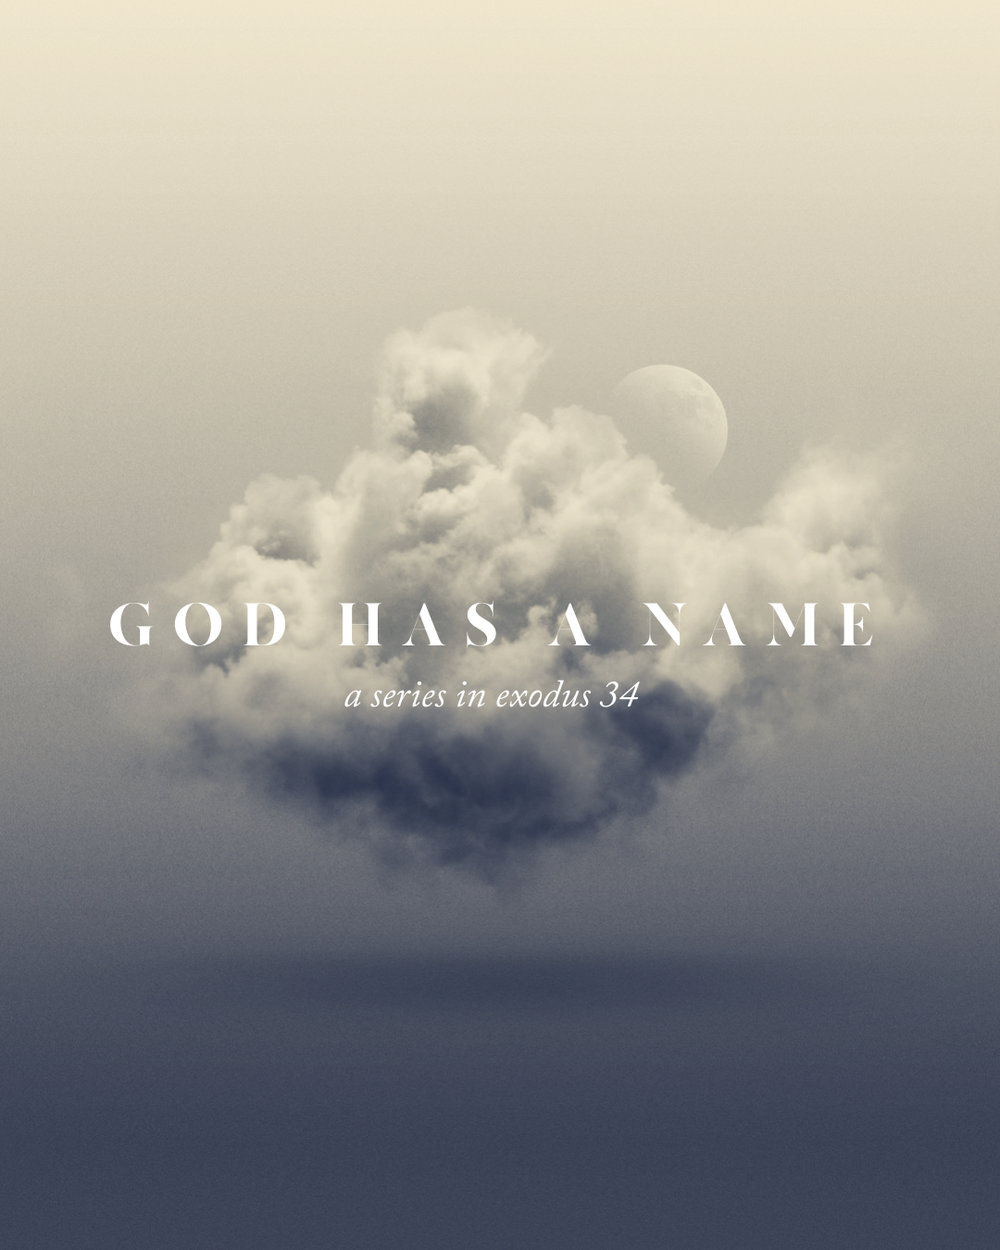 Current Teaching Series: God Has A Name - Exodus 34:6-7, the most quoted passages in the Bible, by the Bible, is God's self-disclosure. Rather than communicate in systematic theology terms like omniscience and immutability, God communicates to us in words that we understand and can relate to, and draws us into relationship with himself.